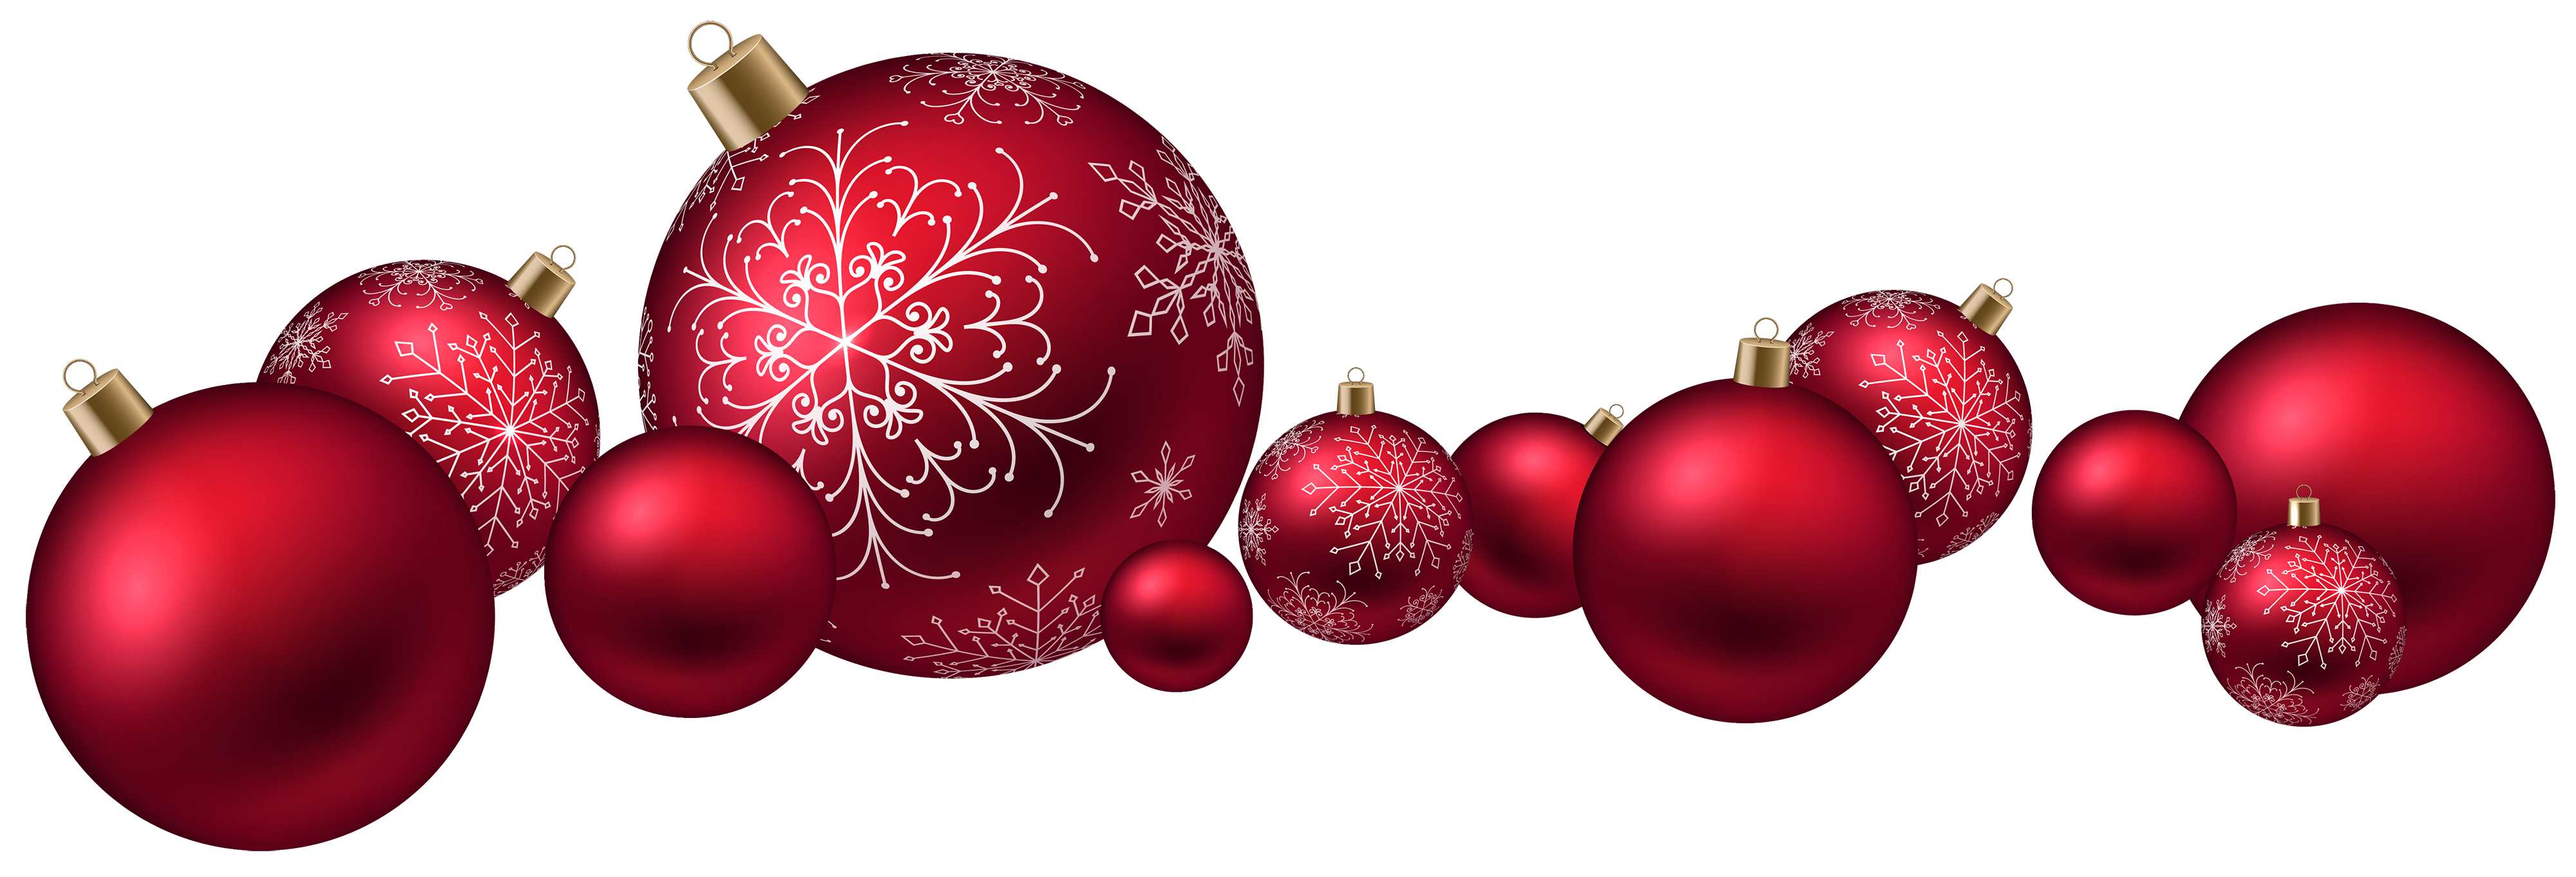 Christmas images png. Red ball clipart best